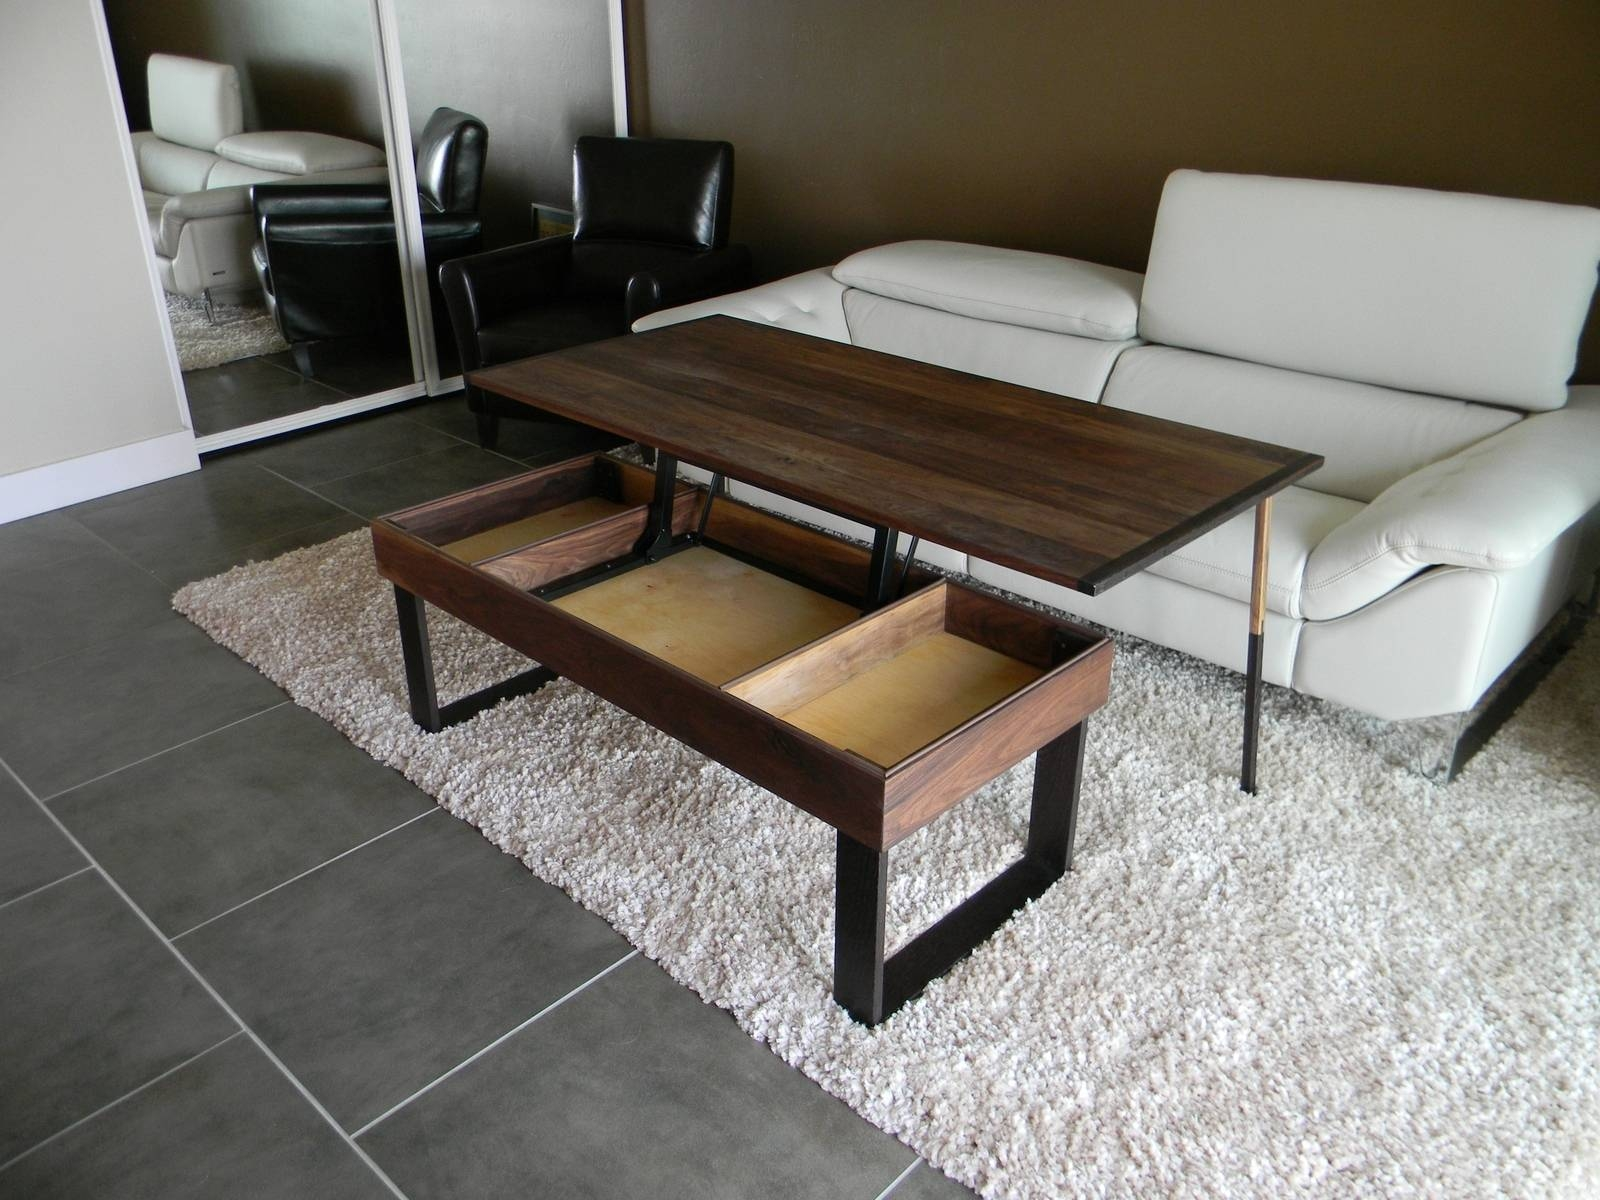 Quality Coffee Table That Lifts Up – Lift Top Coffee Table Amazon With Raise Up Coffee Tables (View 3 of 30)